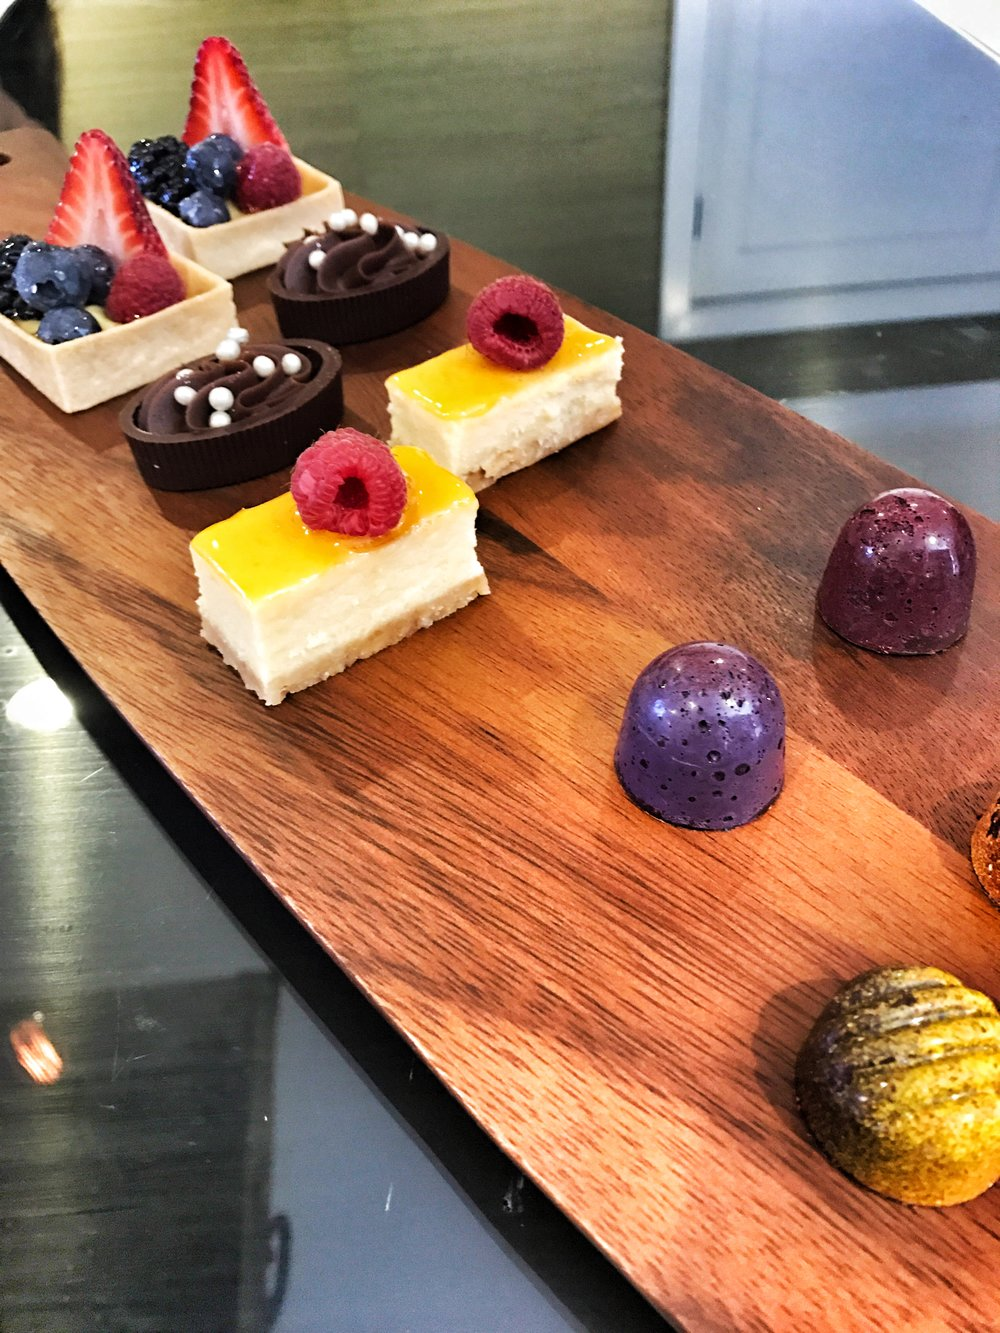 ASSORTED MINIATURE PASTRIES - BLACKBERRY TRUFFLE, CHOCOLATE MOUSSE CUP, MINI CHEESECAKE, AND FRESH FRUIT TART